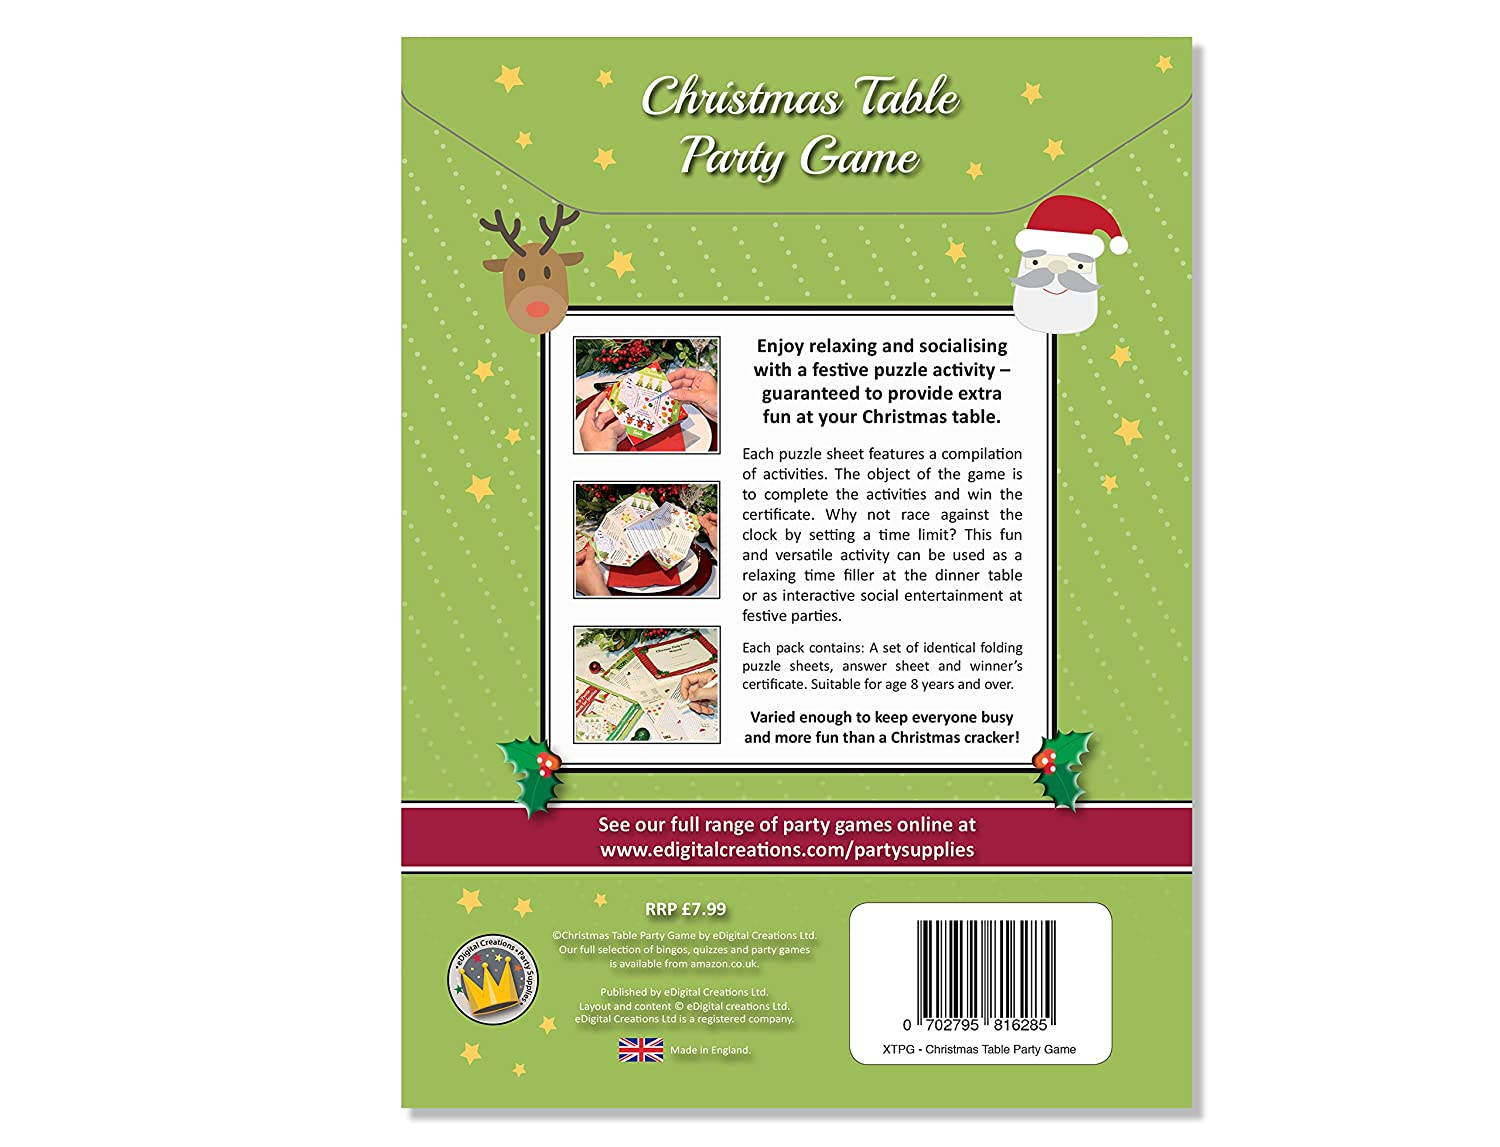 christmas table party games fun quiz trivia puzzle entertainment for families groups - Christmas Office Party Games